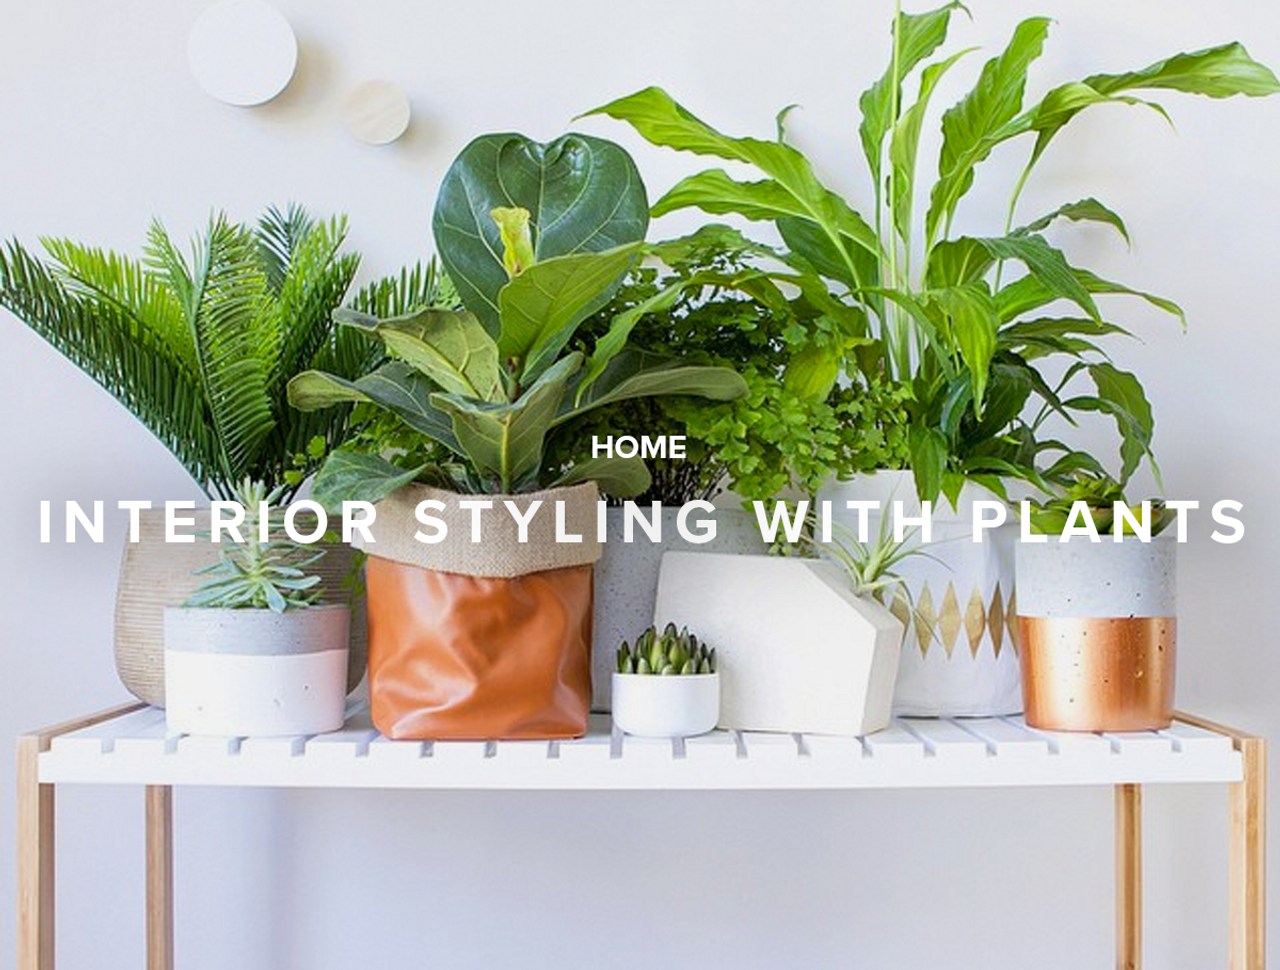 Interior Styling with Plants